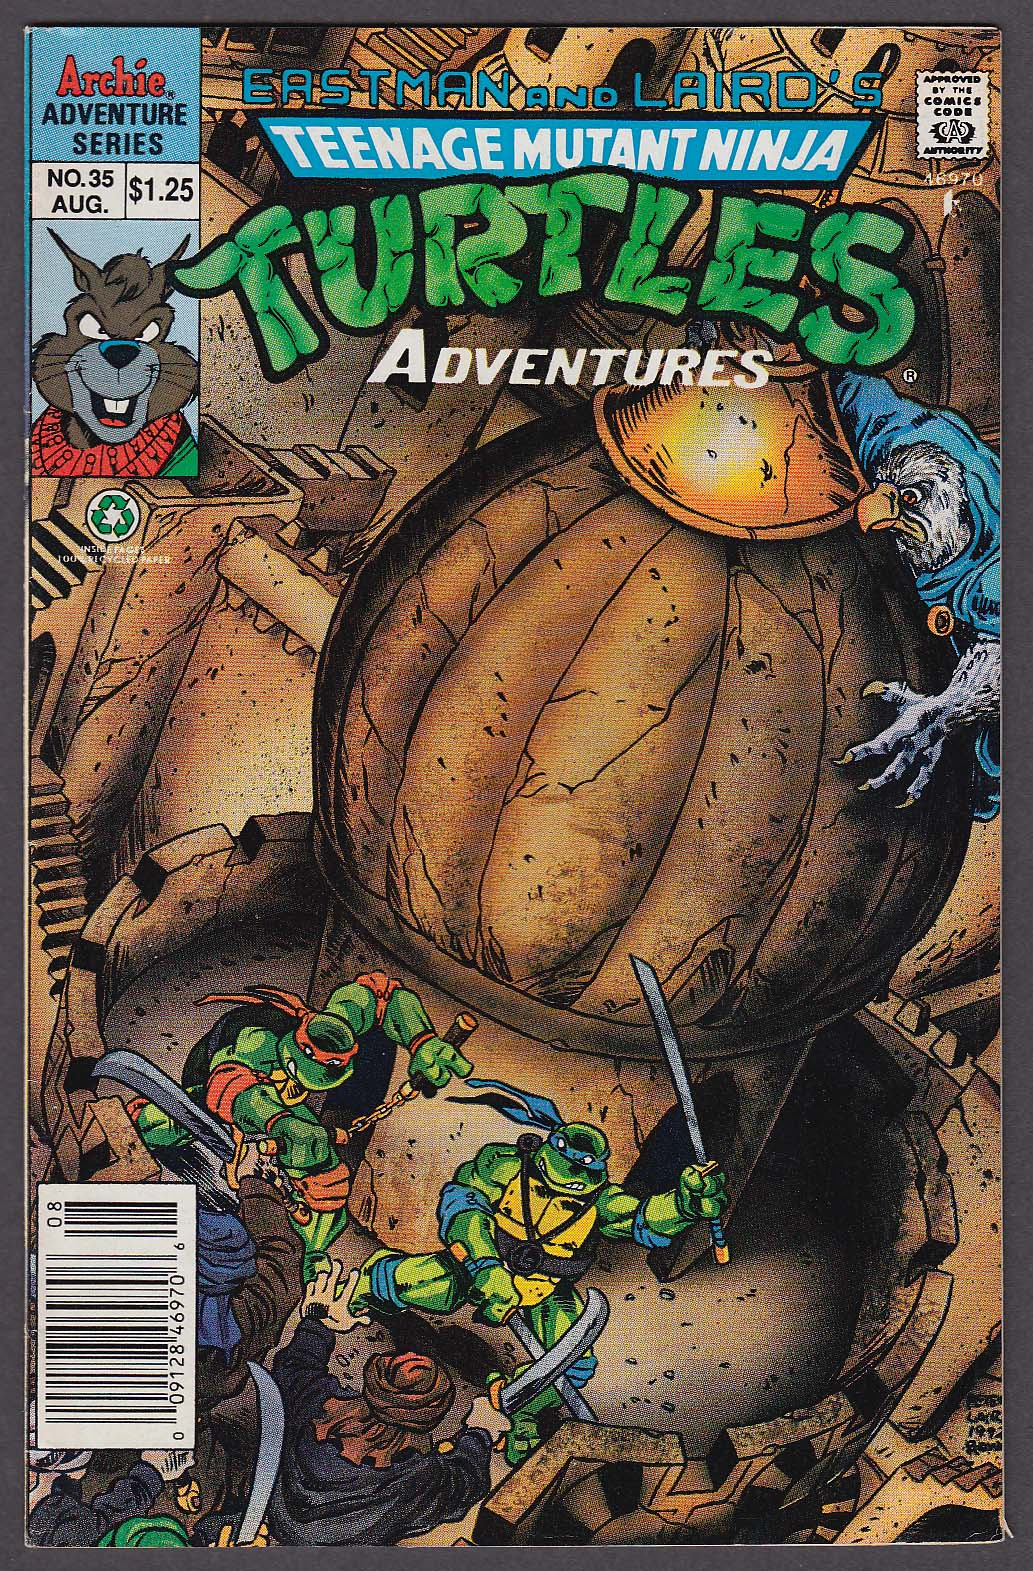 TEENAGE MUTANT NINJA TURTLES ADVENTURES #35 Archie comic book 8 1992